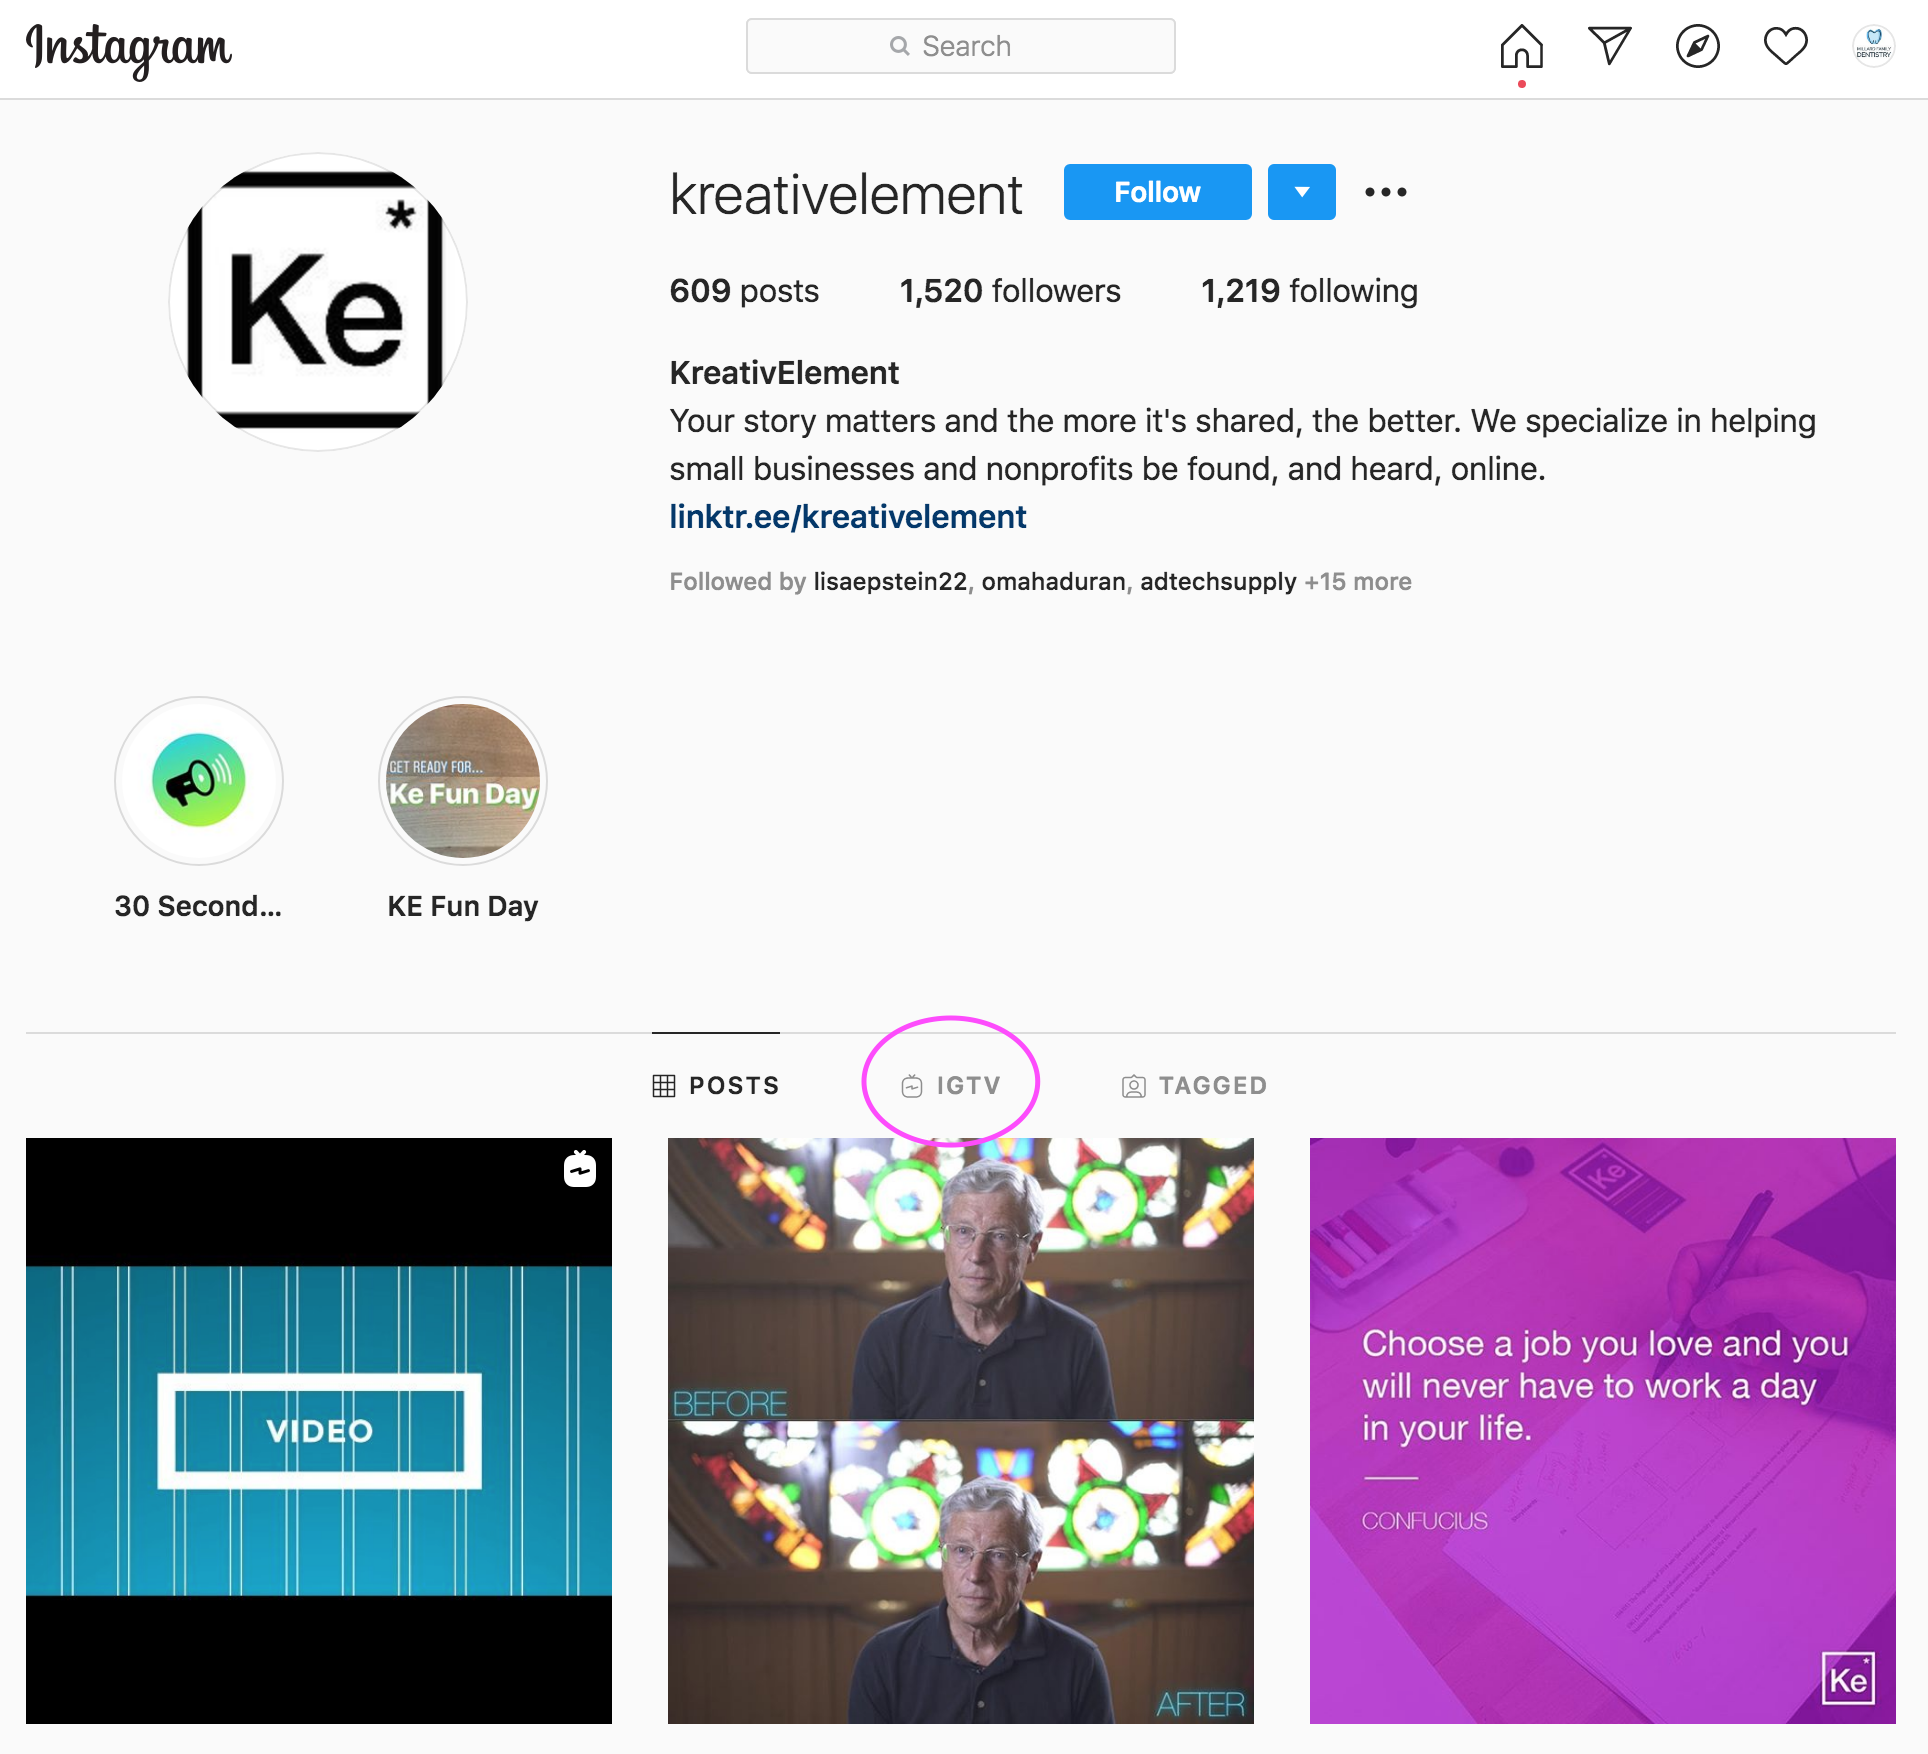 KreativElement Instagram IGTV